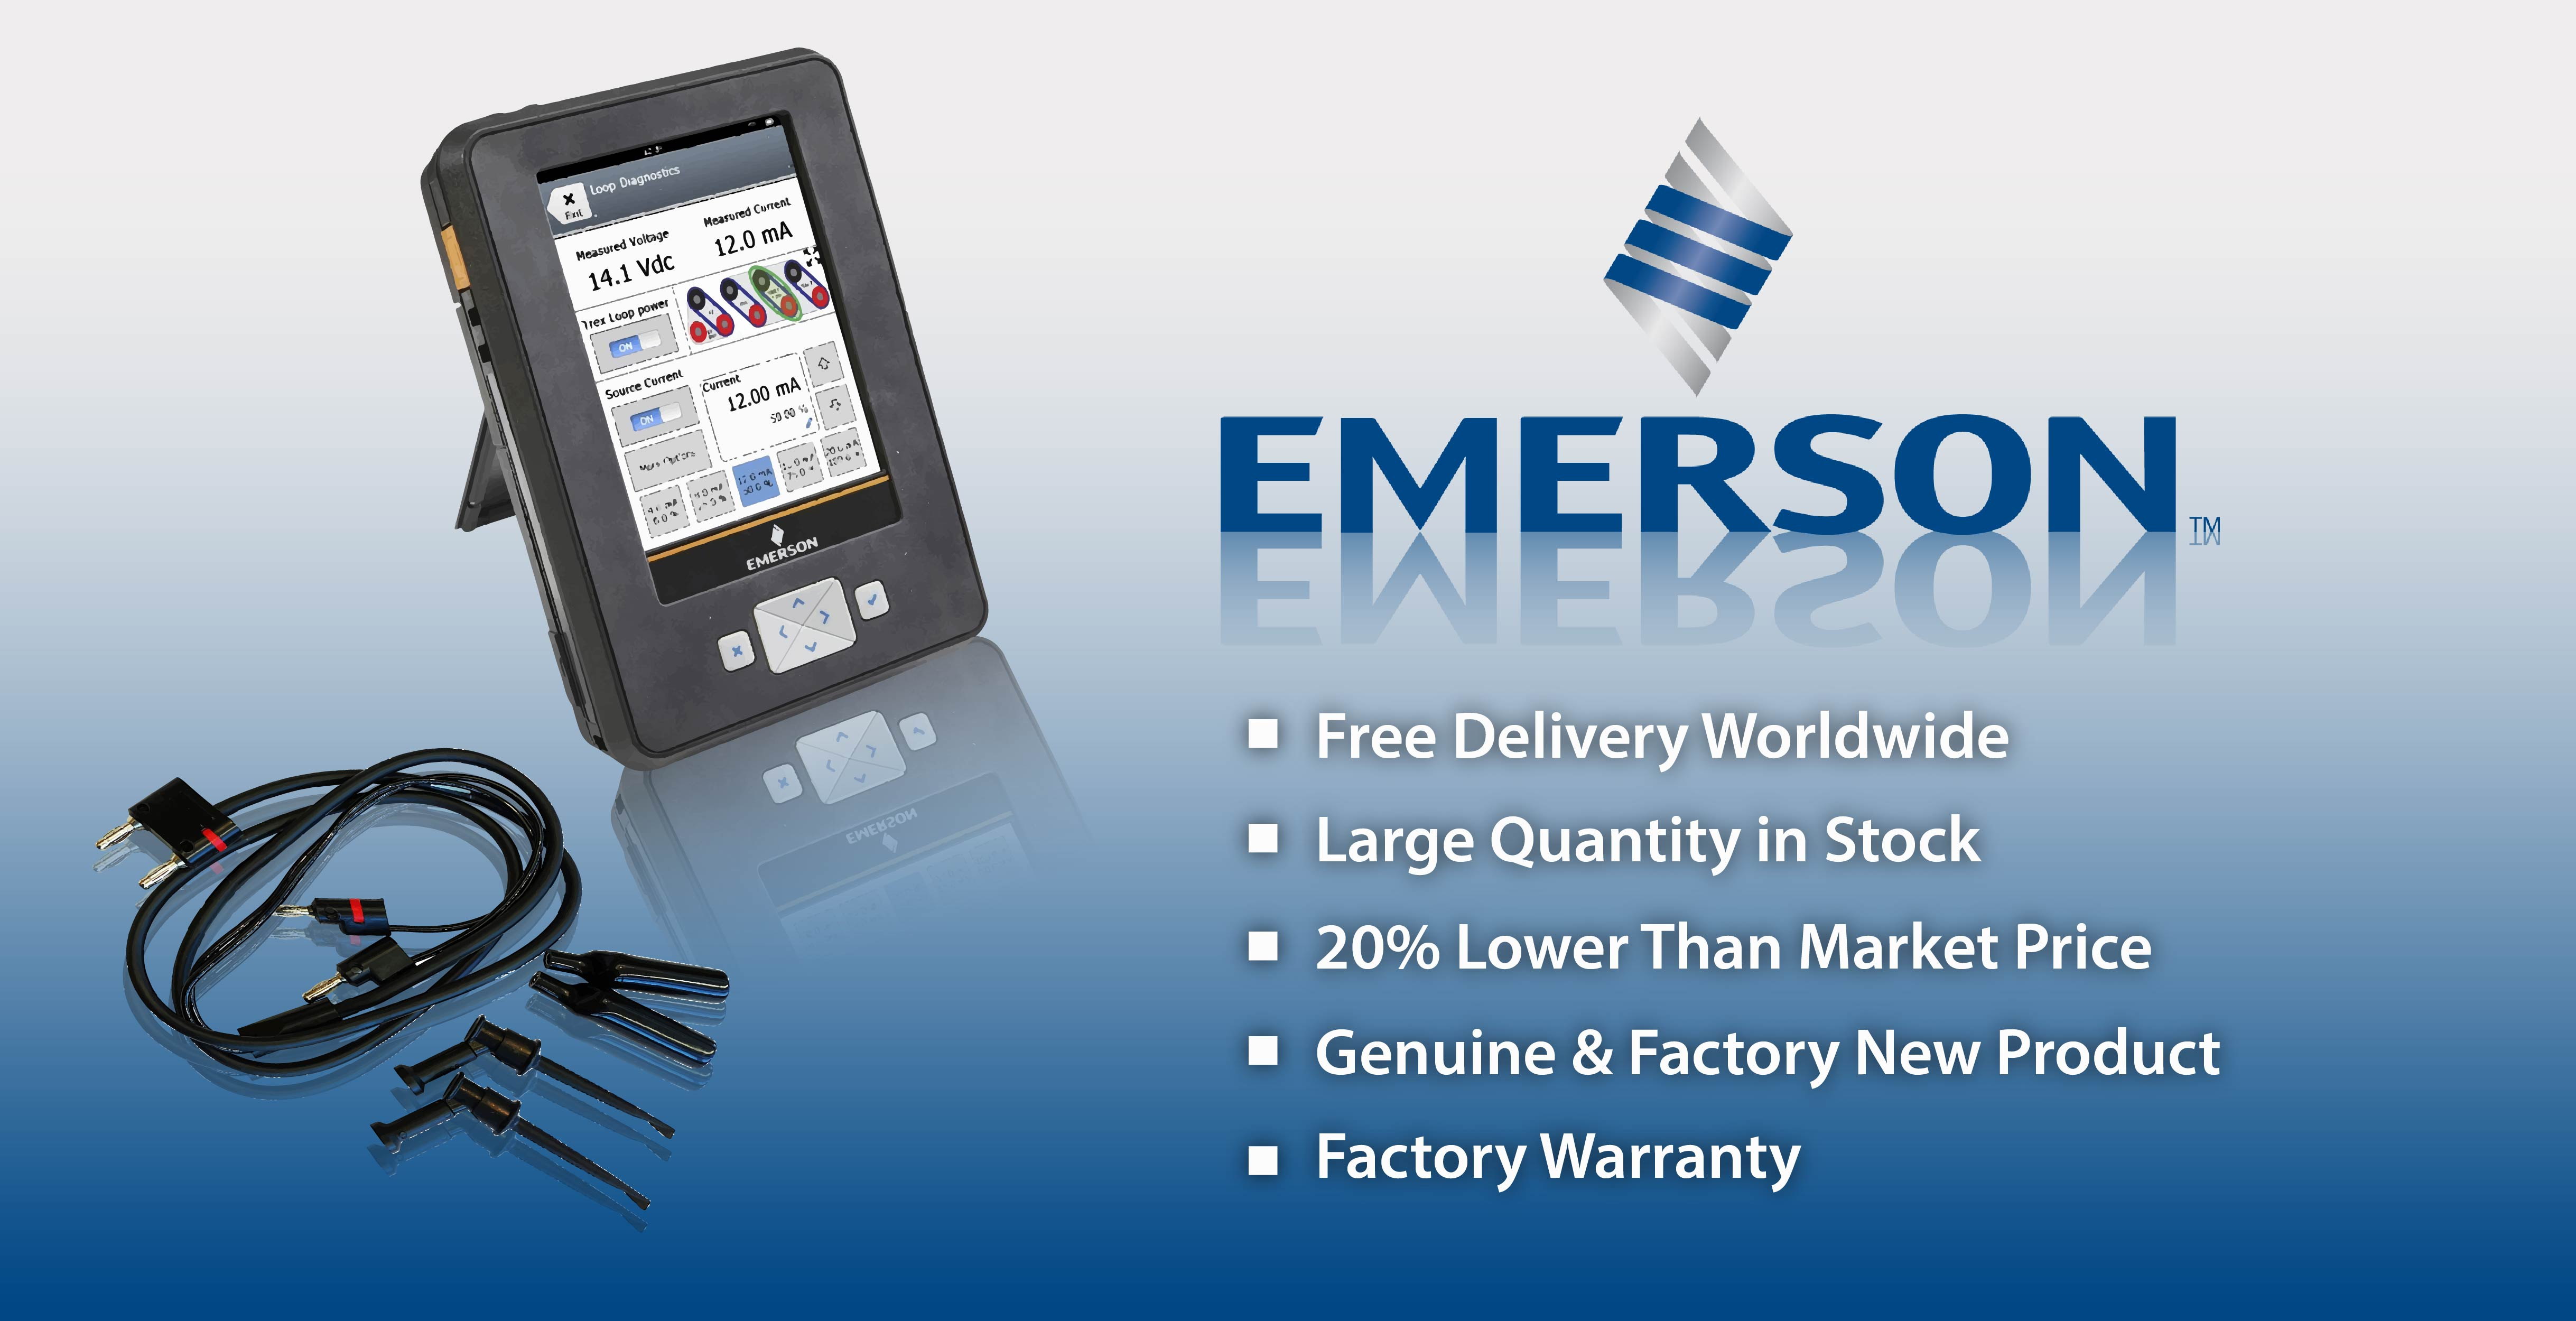 Emerson AMS TREX | 20% Lower than the market price | Quick Time Engineering Inc